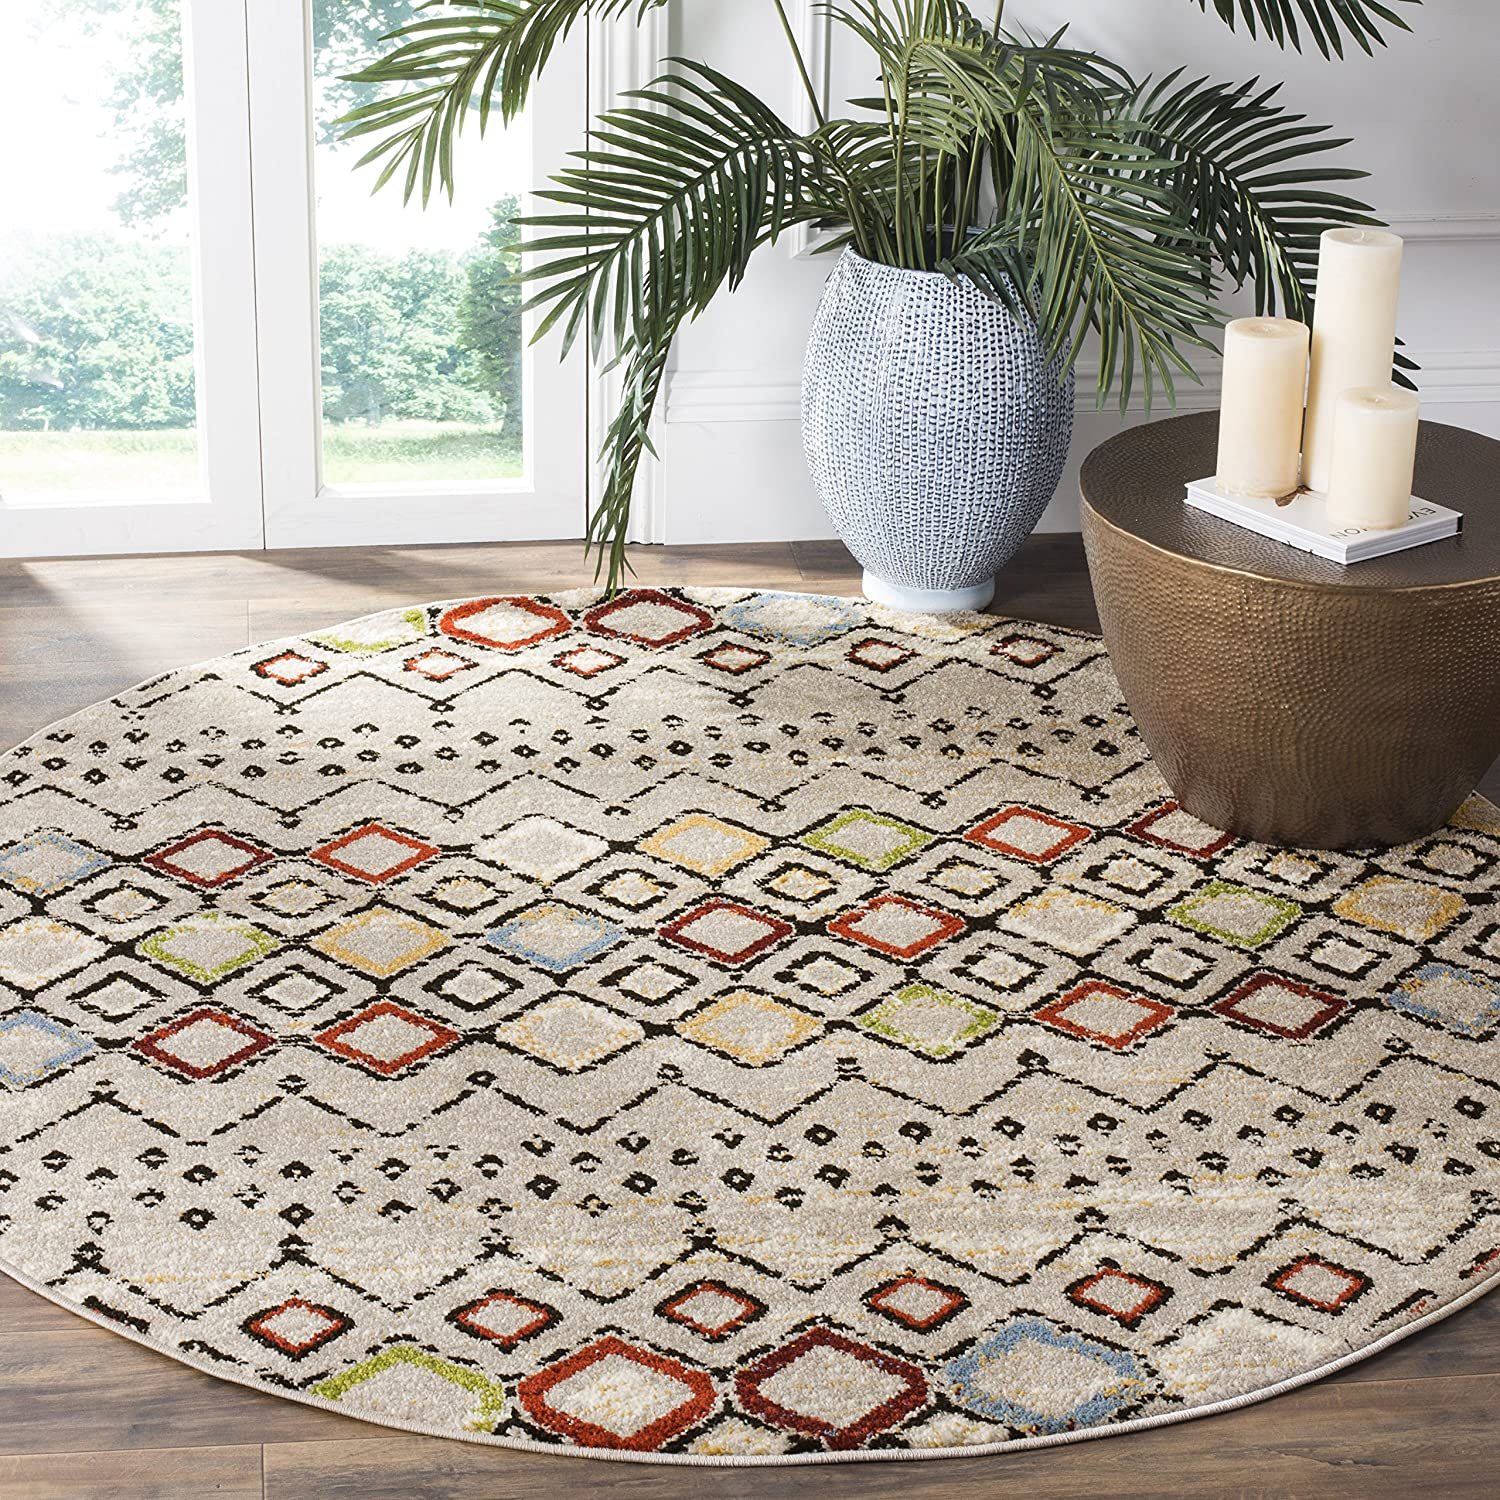 Safavieh Amsterdam Collection AMS108A Boho Chic Moroccan Distressed Area Rug, 10' x 14', Ivory/Grey